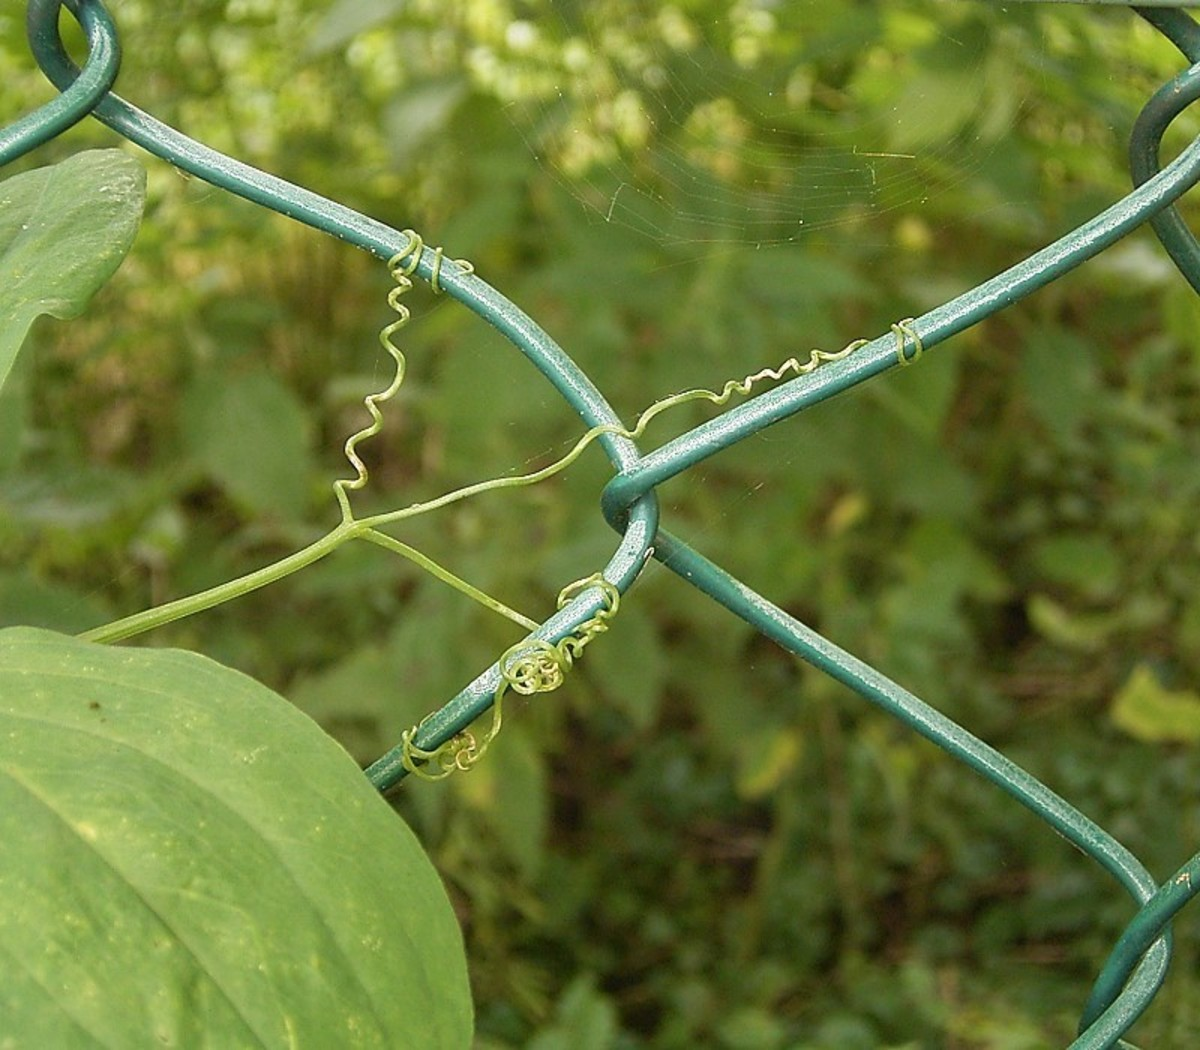 The tendrils on the vines are small so they need something thin like the links in a chainlink fence to grasp.